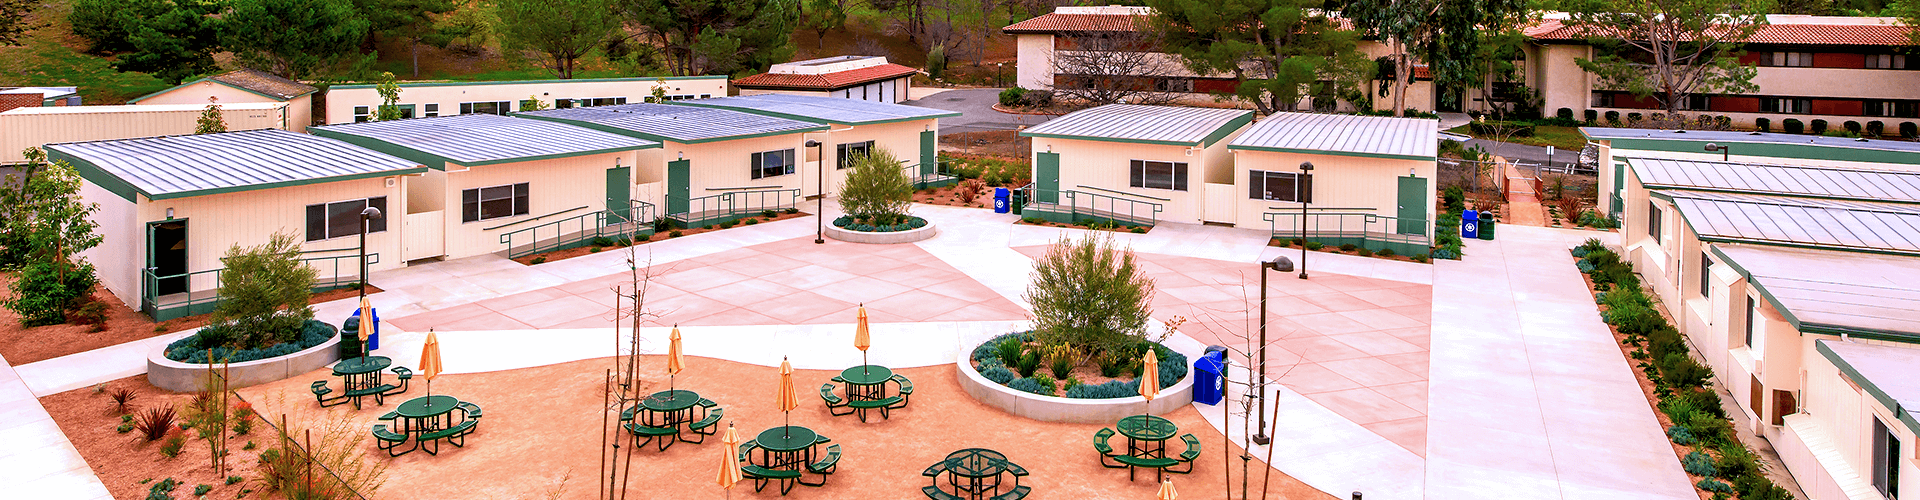 Modular Classroom Rental : Portable classrooms and modular school buildings for rent